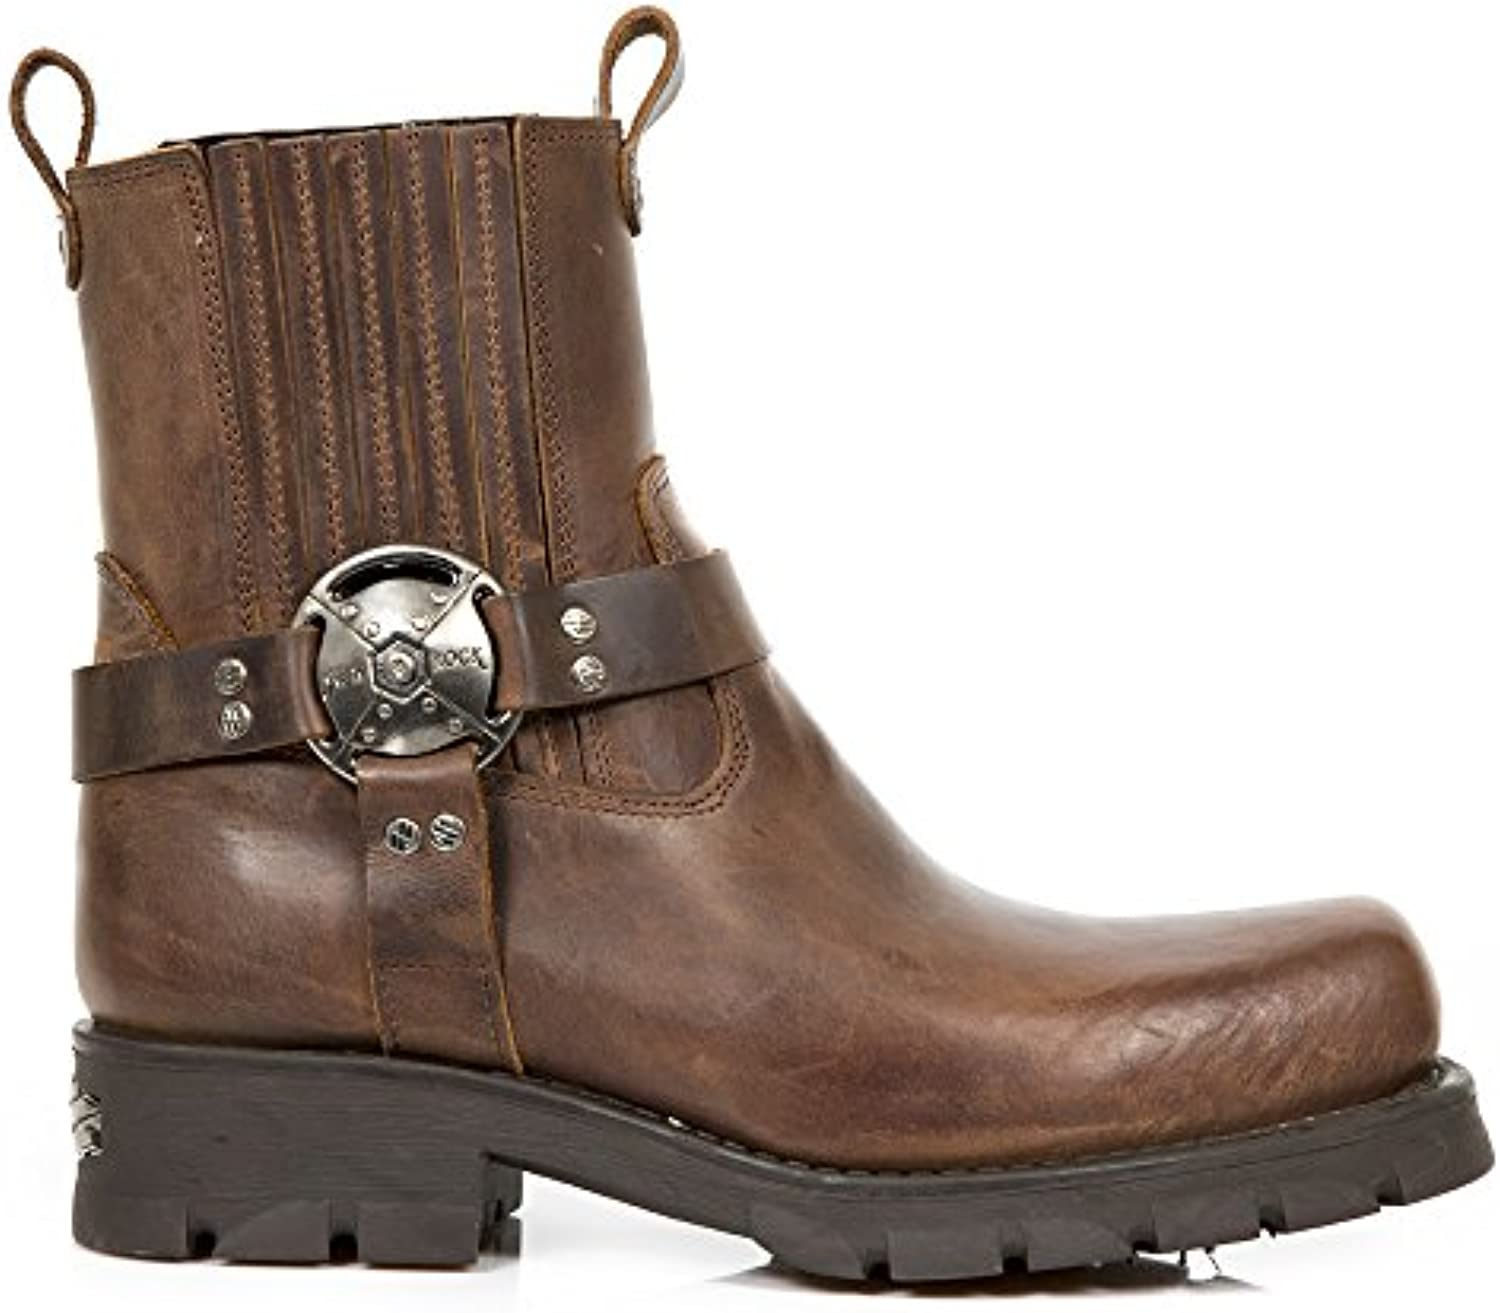 New Rock M.7605 S20 Marron Leder Stiefel